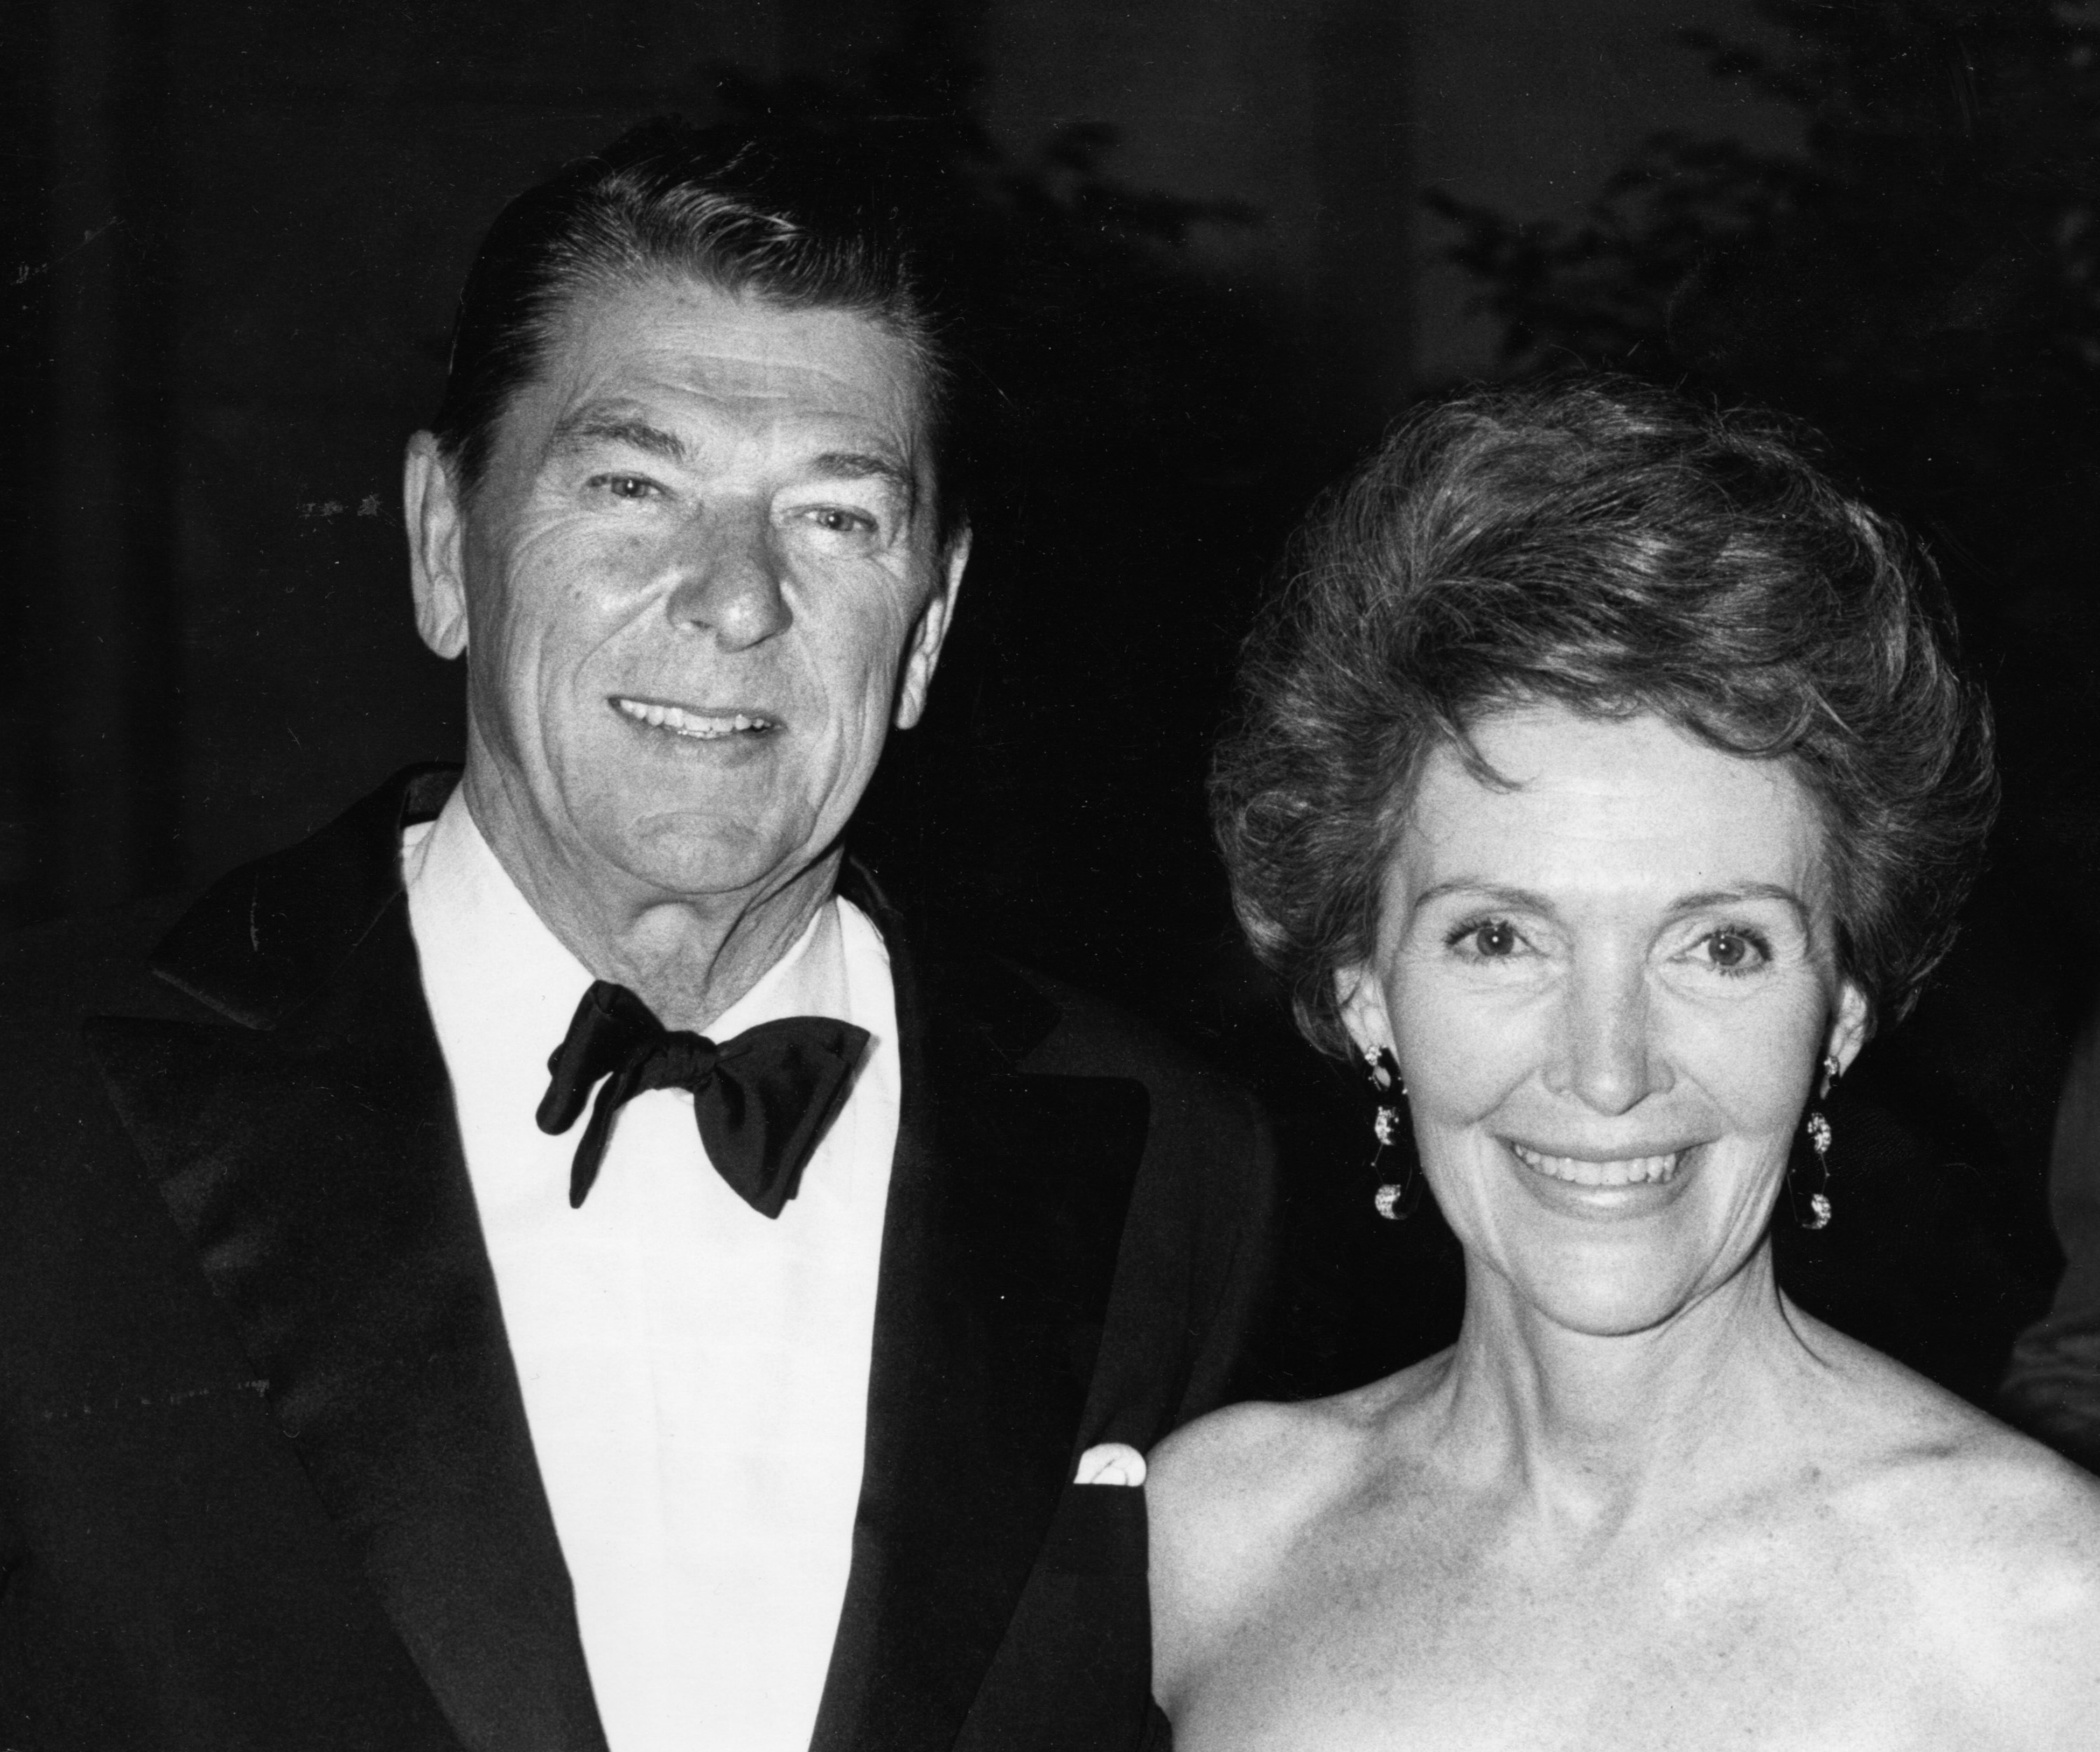 Ronald Reagan and Nancy Reagan during Diana Vreeland's Opening At The MOMA at Metropolitan Museum of Art in New York City, NY, United States.